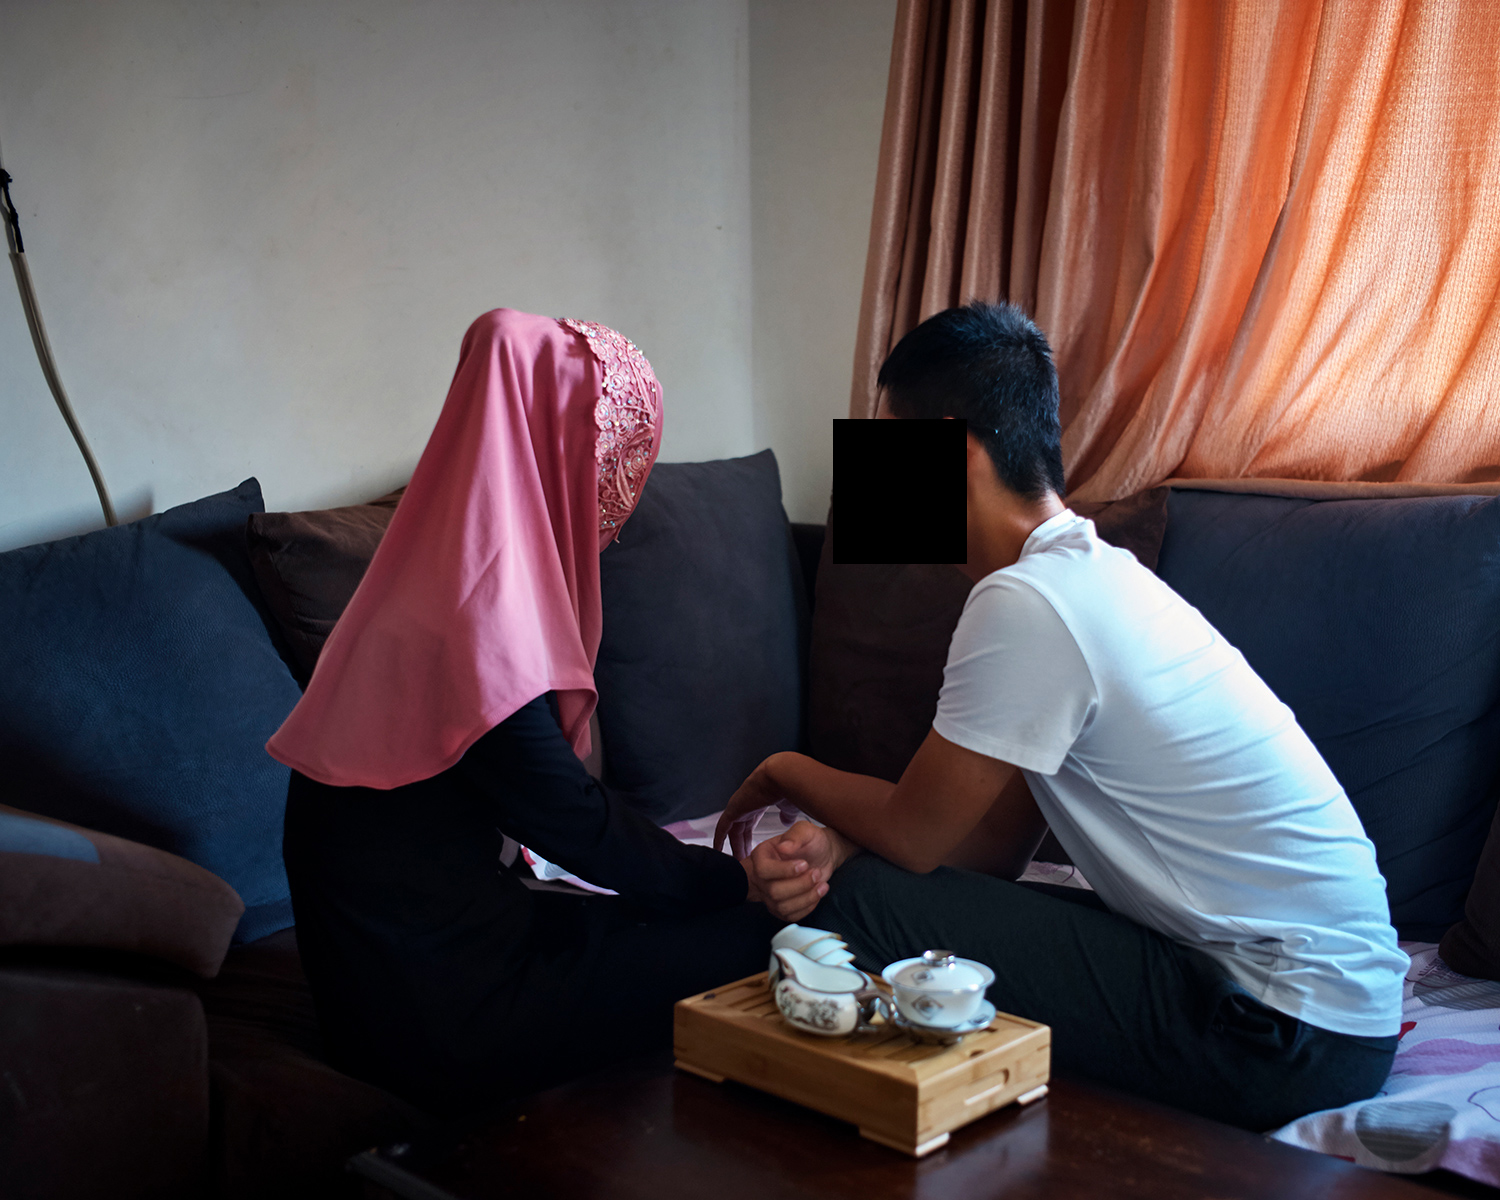 Umar and his wife Sofia in their rented apartment near the University of Jordan, in Amman, September 2017. Sofia is Hui and was born in the Xinjiang Uighur Autonomous Region. She moved to Amman to join Umar after they married in the summer of 2017. She didn't let anyone but her parents know about her whereabouts out of fear of being reported to the local authorities in Xinjiang. She told people she was doing business in Guangzhou.